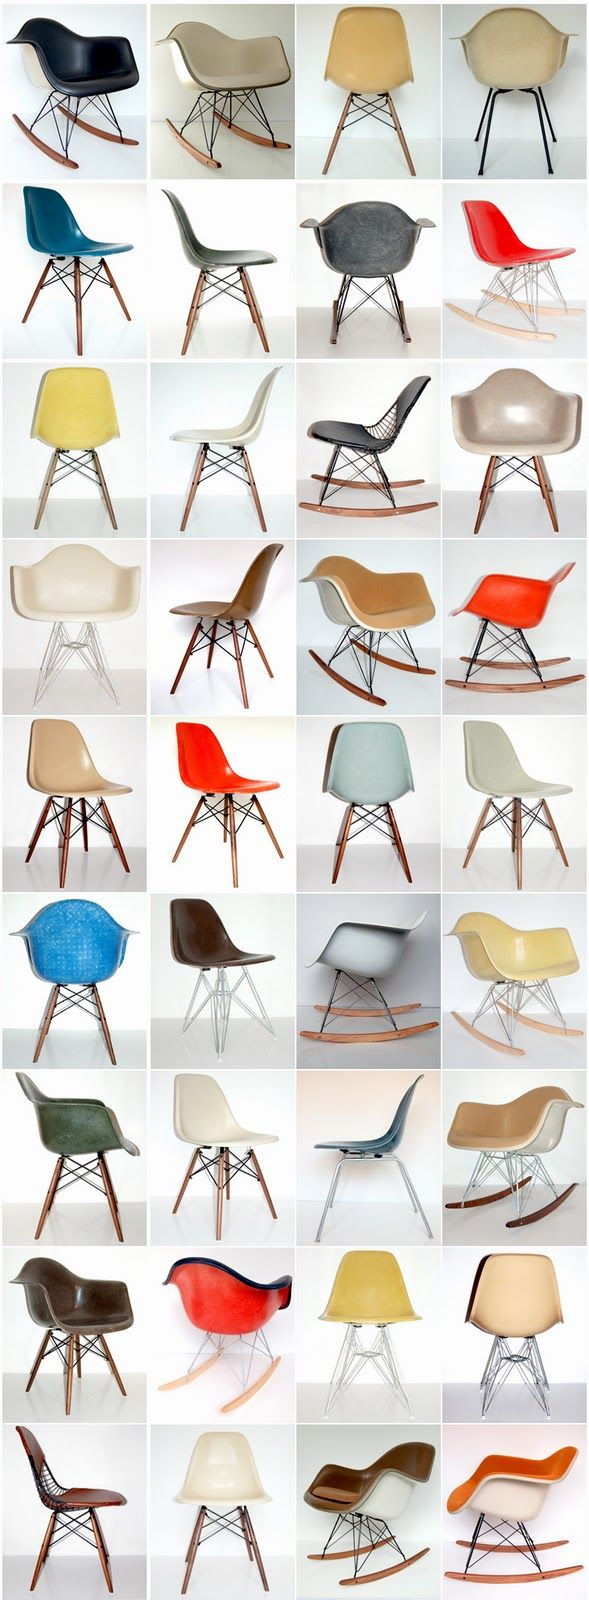 Modern Conscience Is A Modern Furniture Workshop Featuring An Online Gallery And A Selection Of Hand Picked Original Modern With Images Eames Eames Chairs Modern Furniture